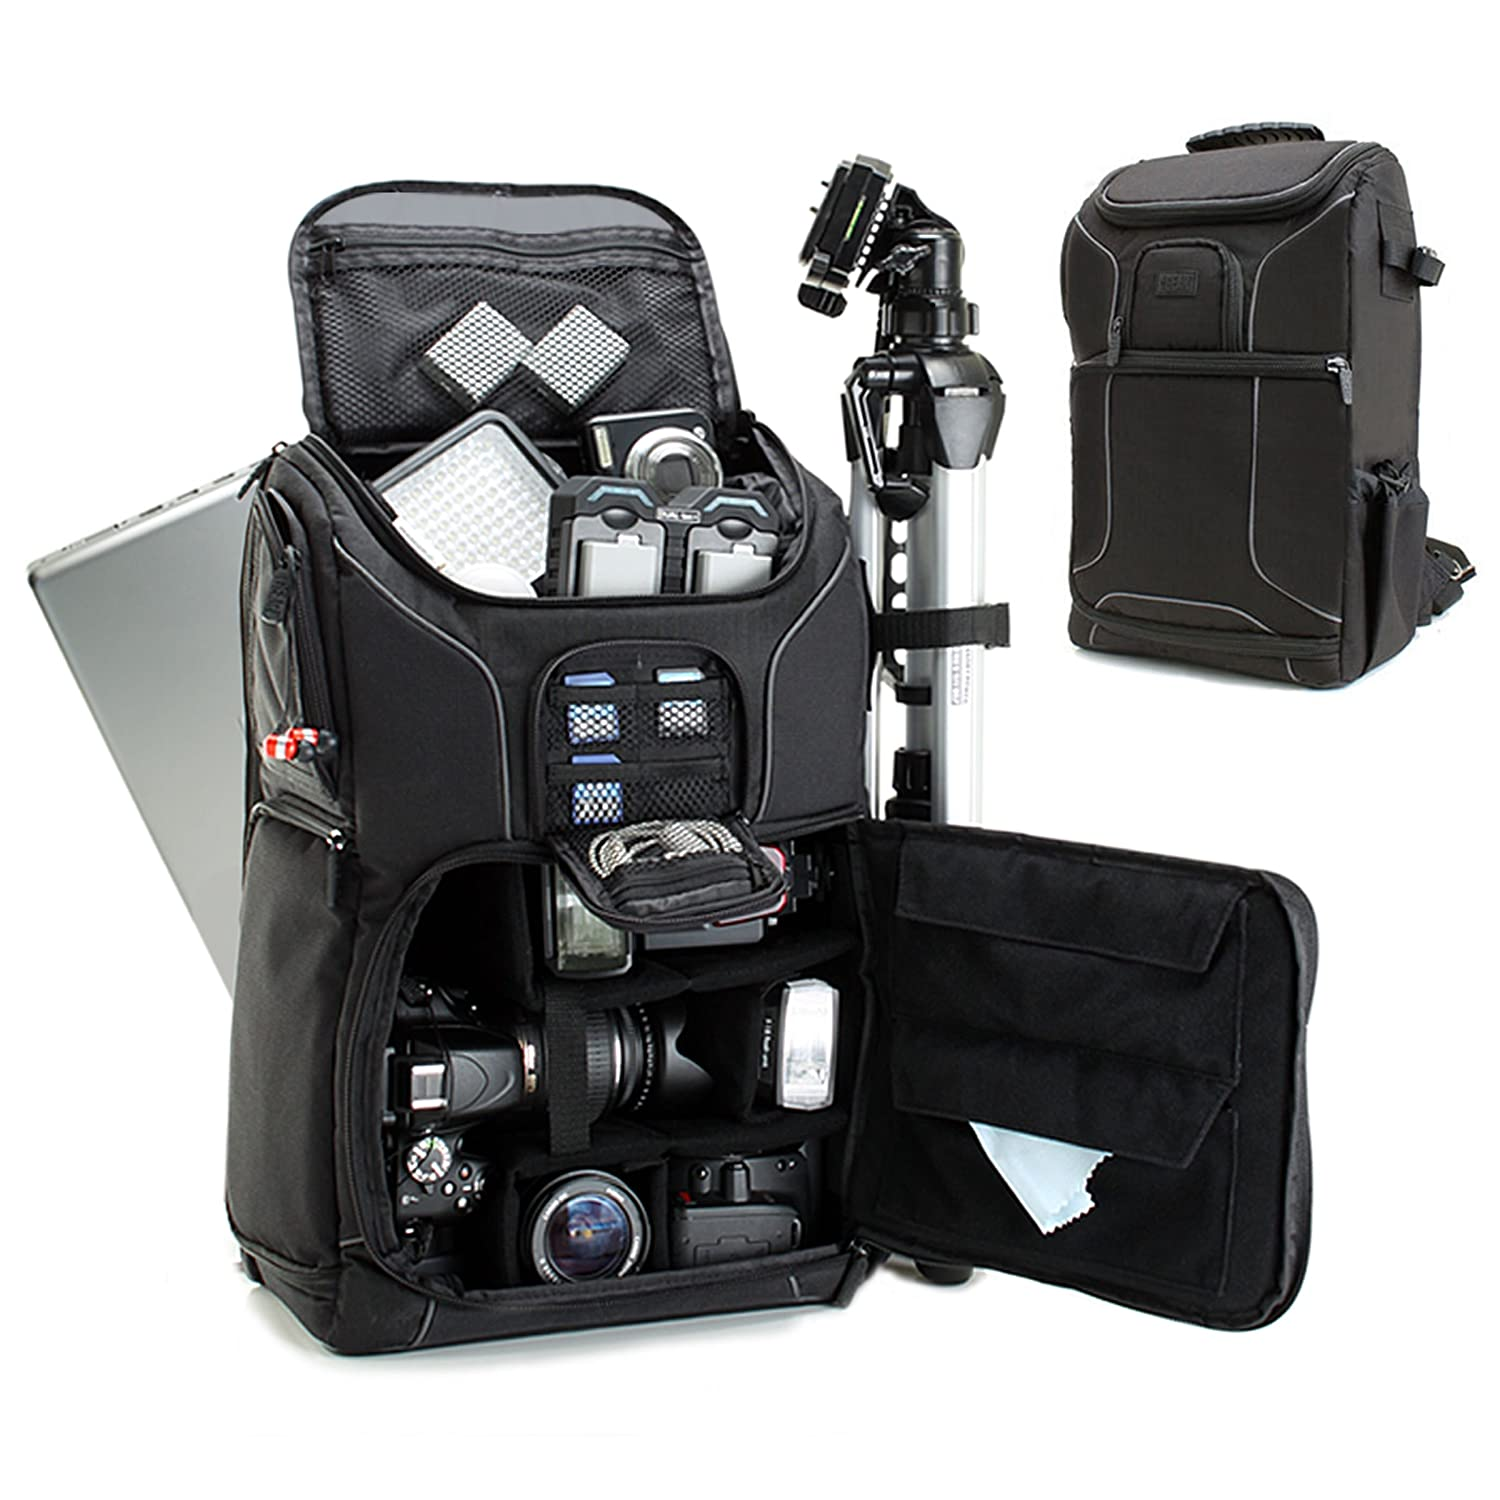 Professional Camera Backpack DSLR Photo Bag with Comfort Strap Design, Laptop, Tripod Holder, Lens and Accessory Storage for Canon EOS Rebel T5, T5i, T6i and More Full-Sized Digital SLR Cameras USA Gear W9GEARS17BP_CE01